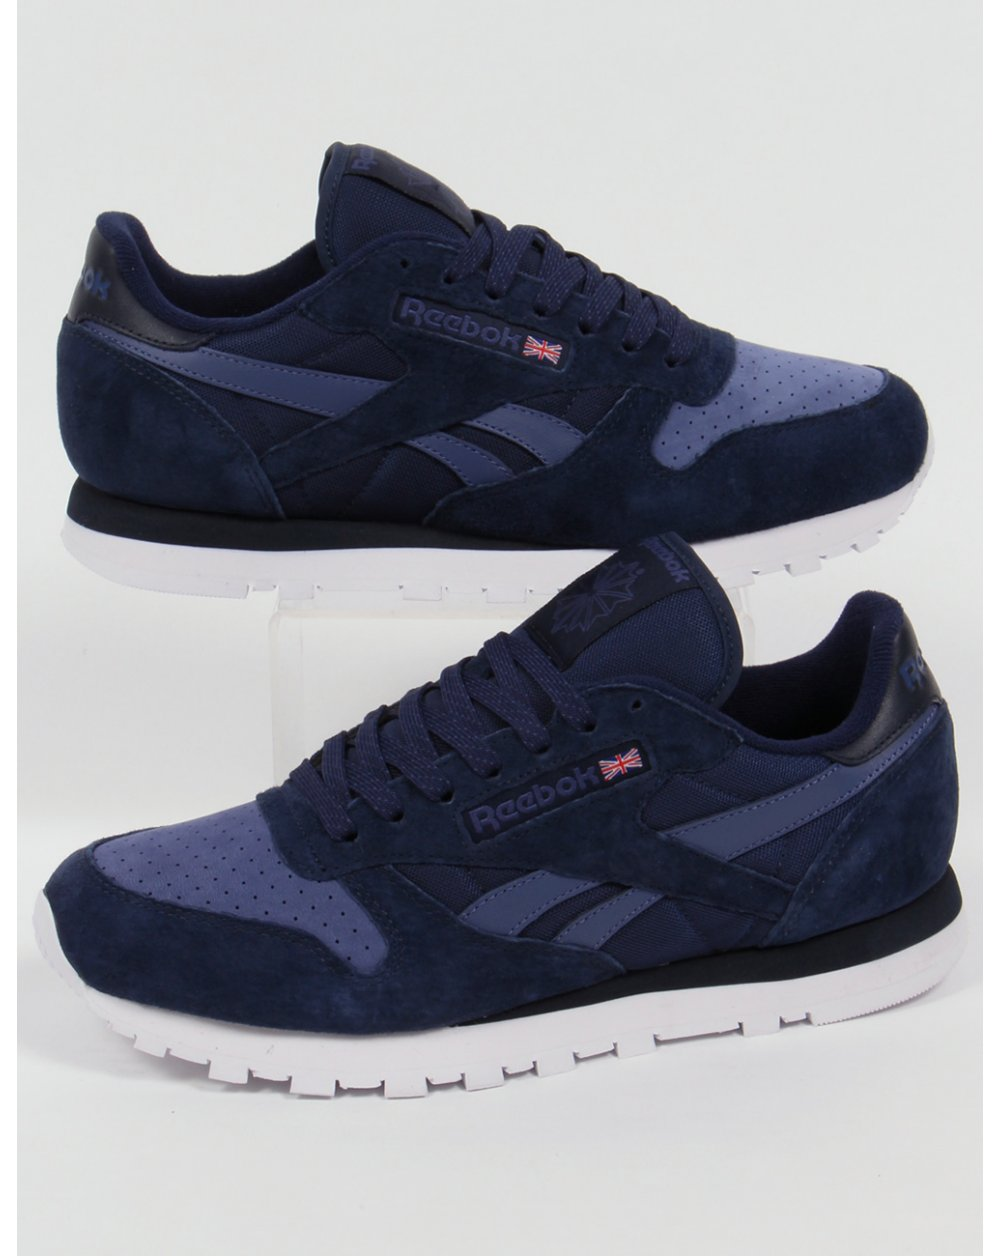 5ca2c15e9a4 Reebok Reebok Classic Leather NP Trainers Navy Midnight Blue